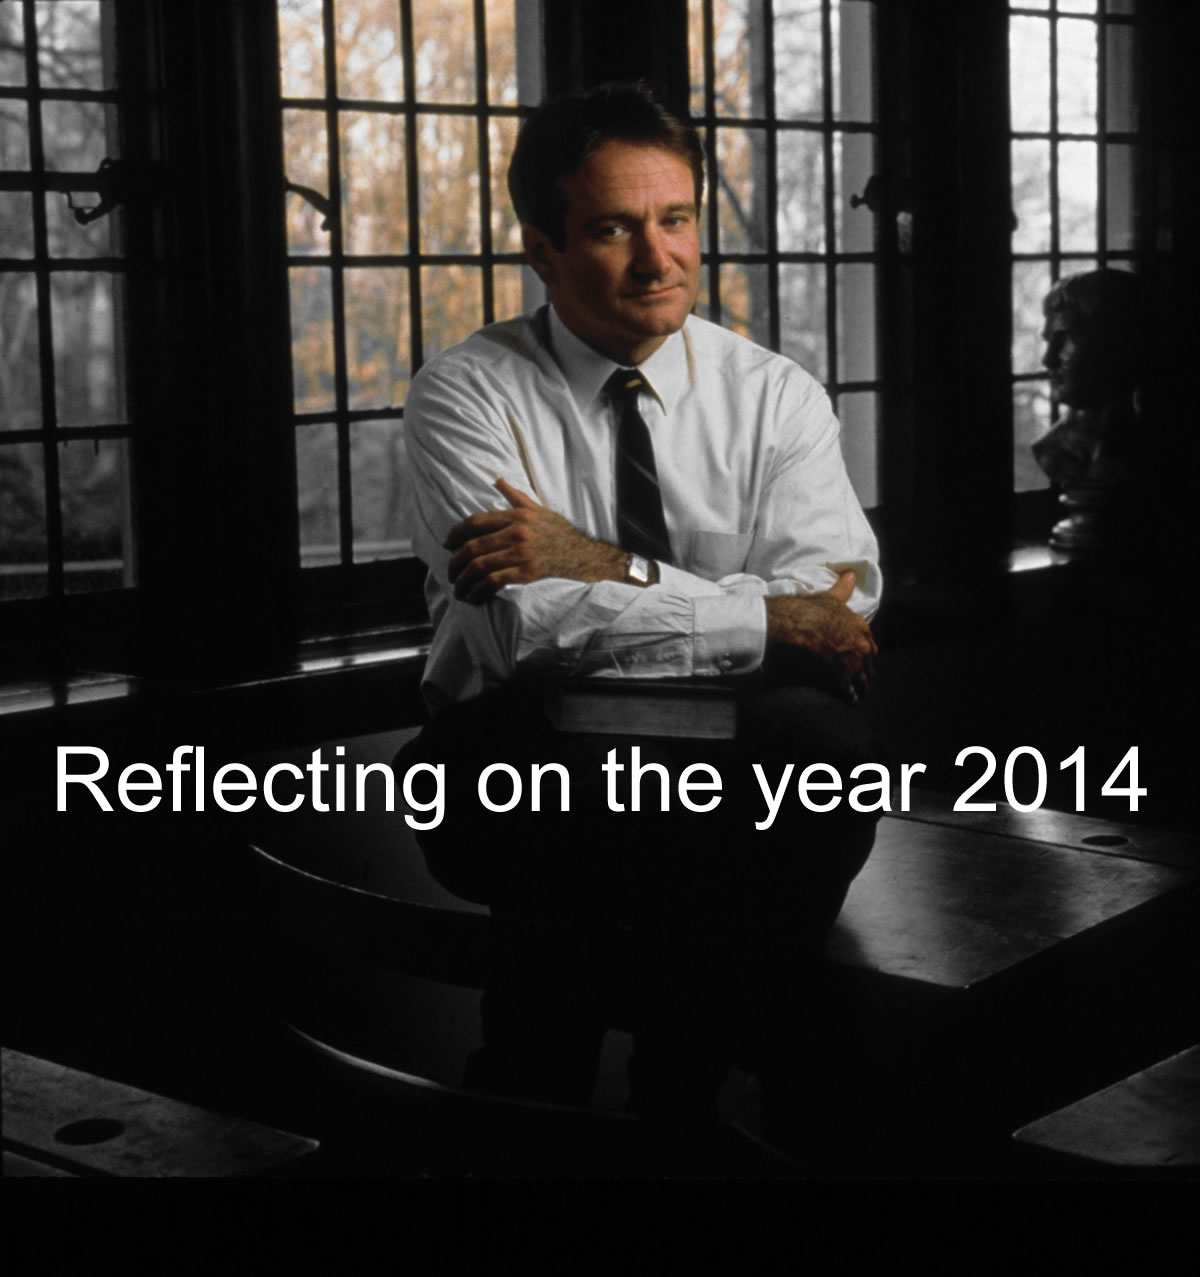 Reflecting on 2014 - Robin Williams in Dead Poets Society © Touchstone Pictures